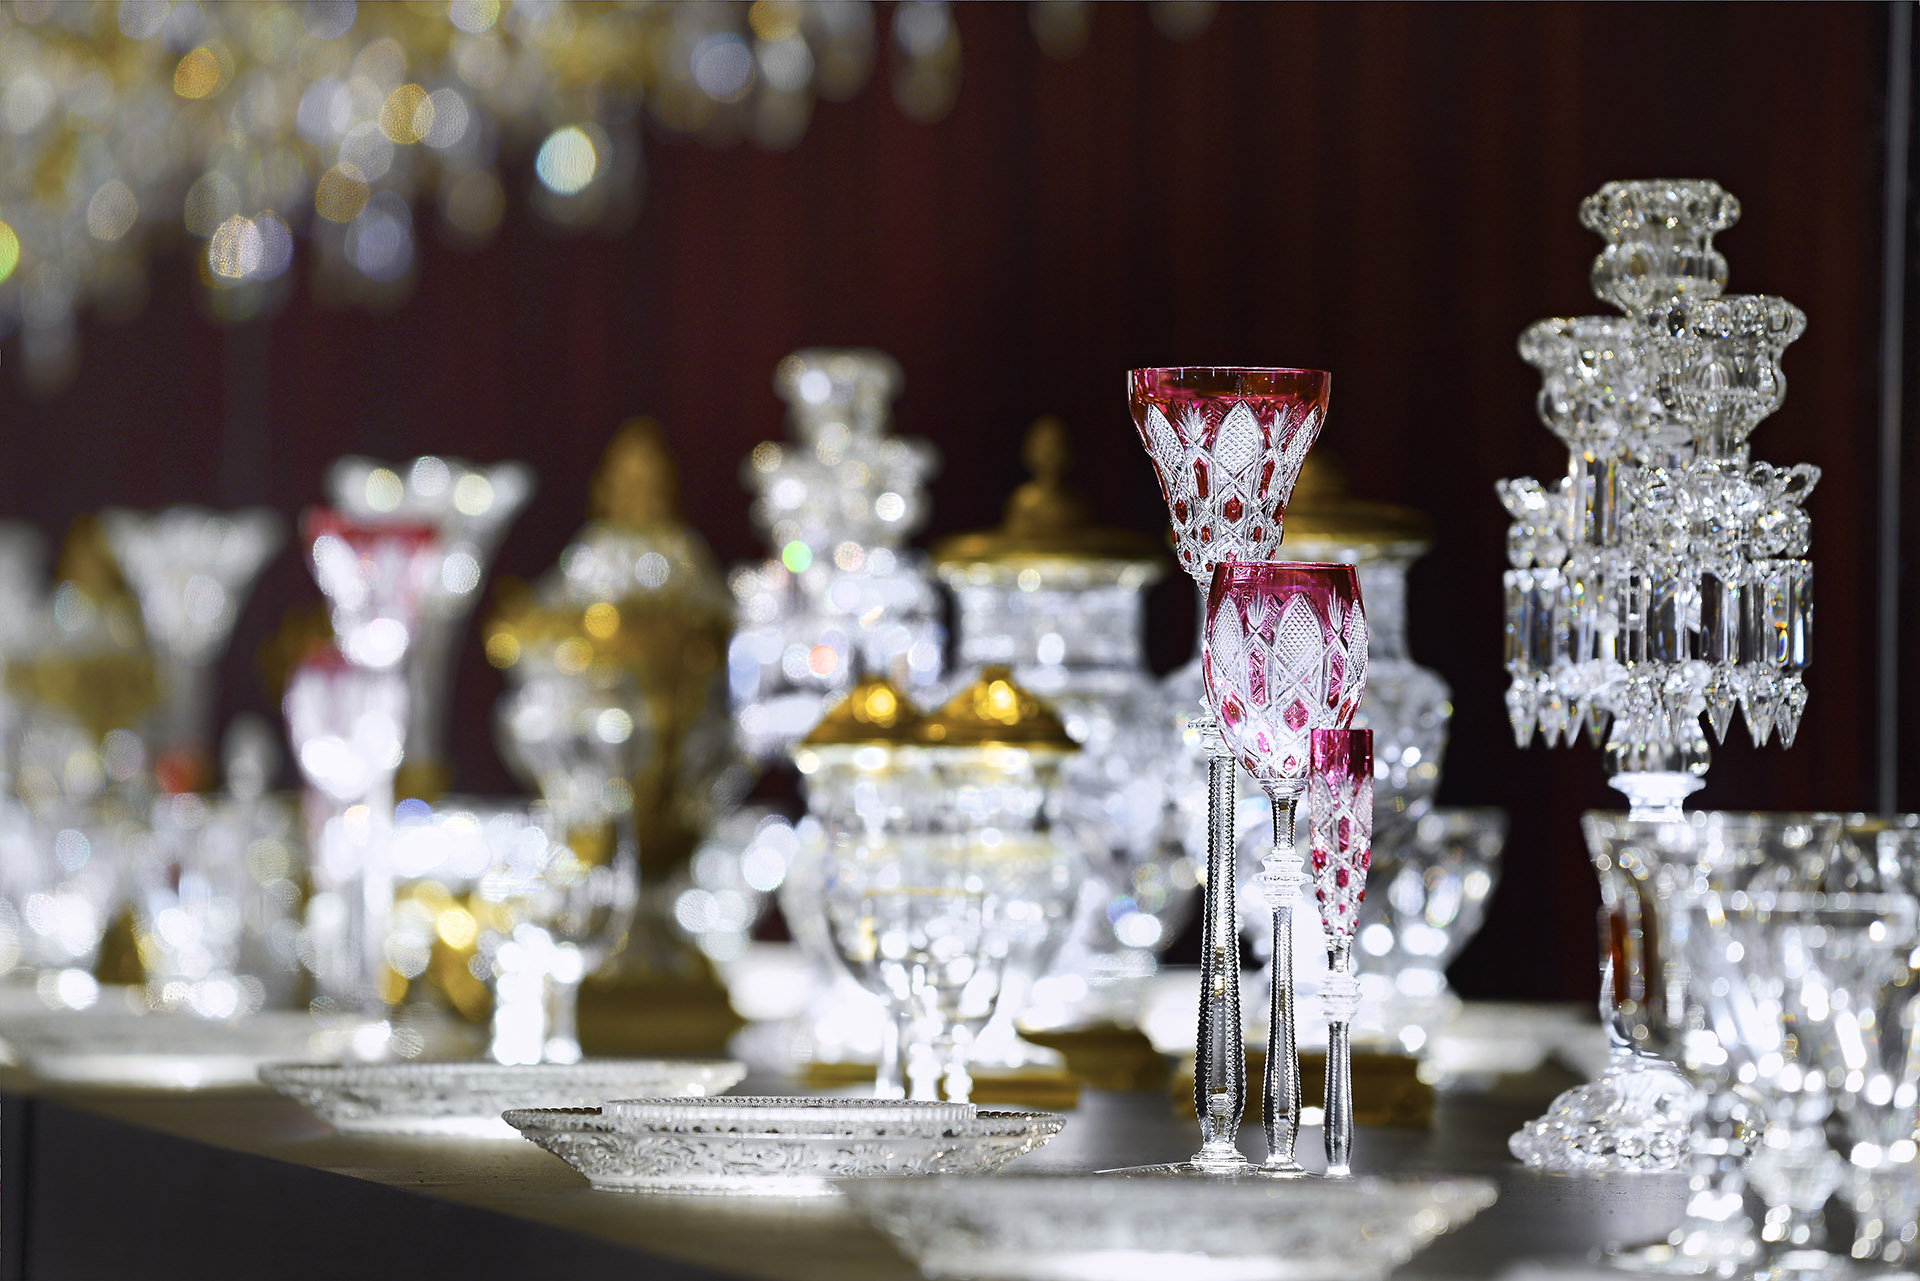 Baccarat - Tsar, a glass created for the Tsar Nicholas II, made with transparent glass with different colors and diamond cut